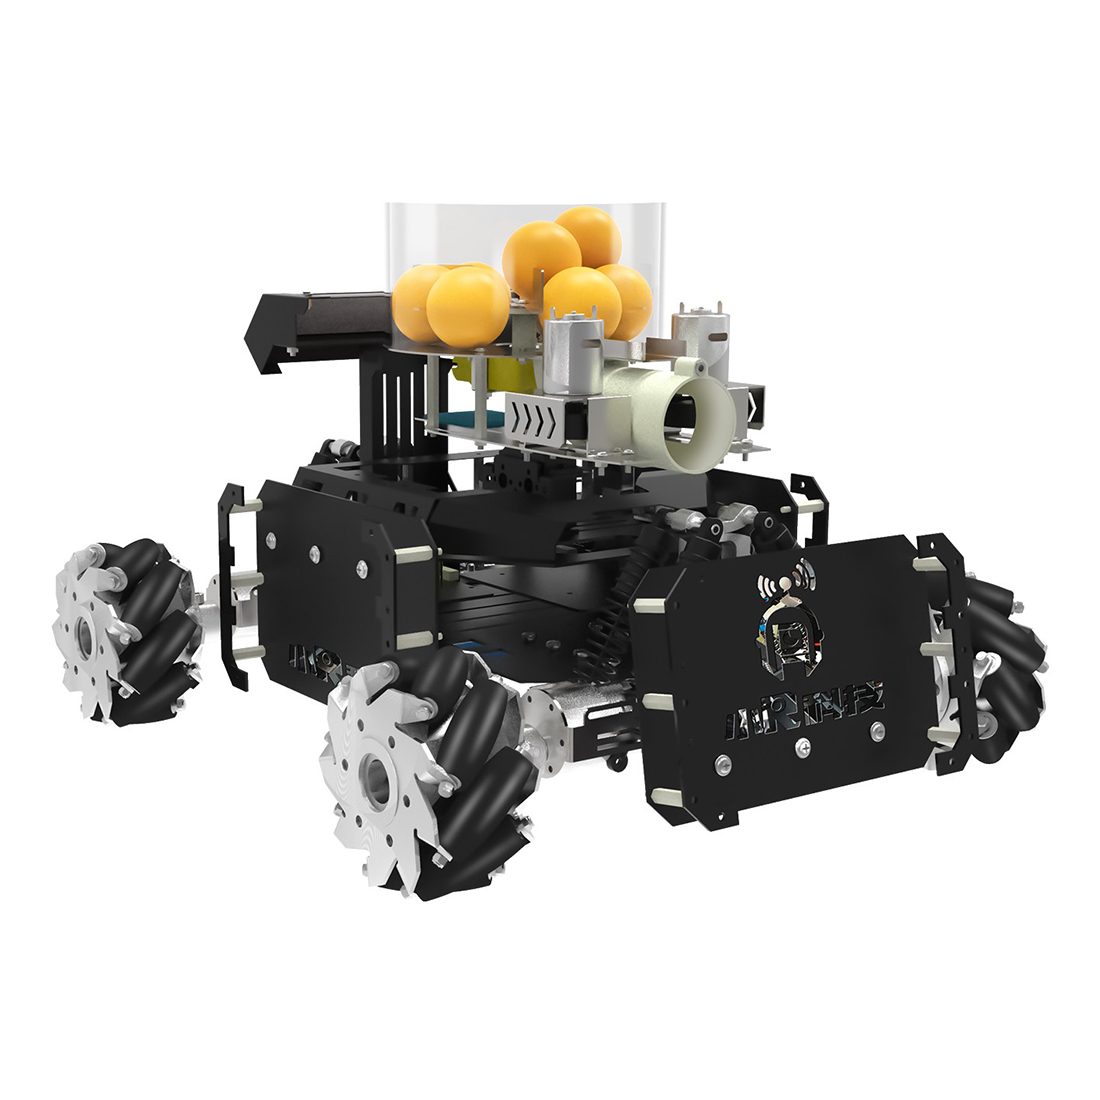 DIY Steam Omni Wheel Turret Chariot VR Video Control XR Master Robot For STM32 Model Educational Toy Gift For Kid Adult - Black image